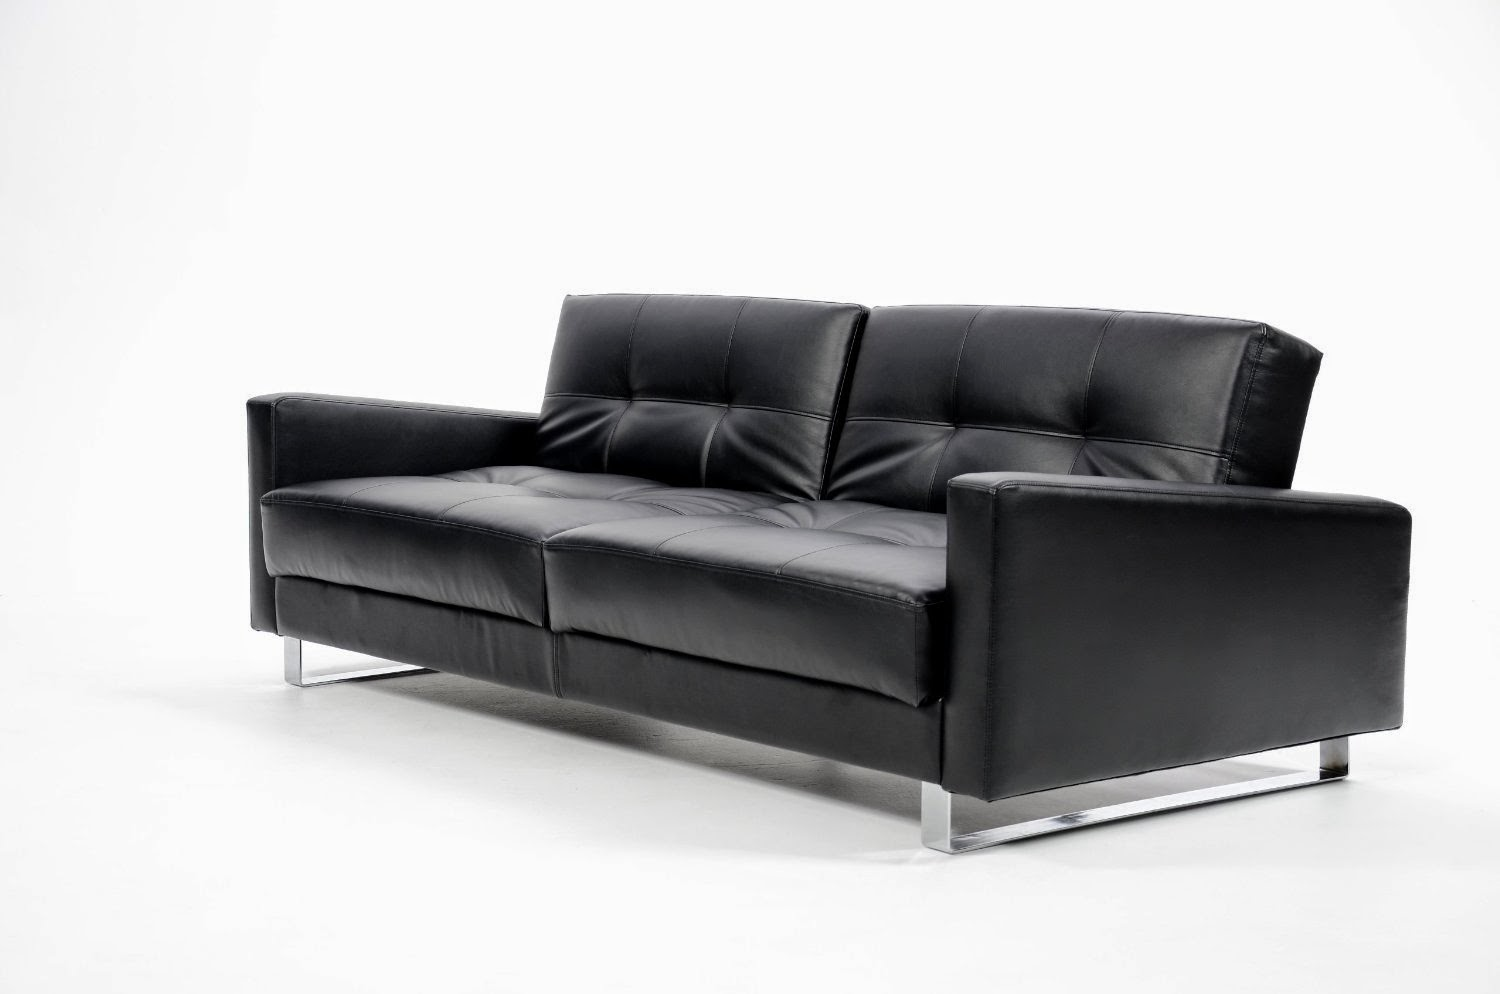 black leather sofa : black leather sofa bed from blackleathersofa191992.blogspot.com size 1500 x 994 jpeg 74kB